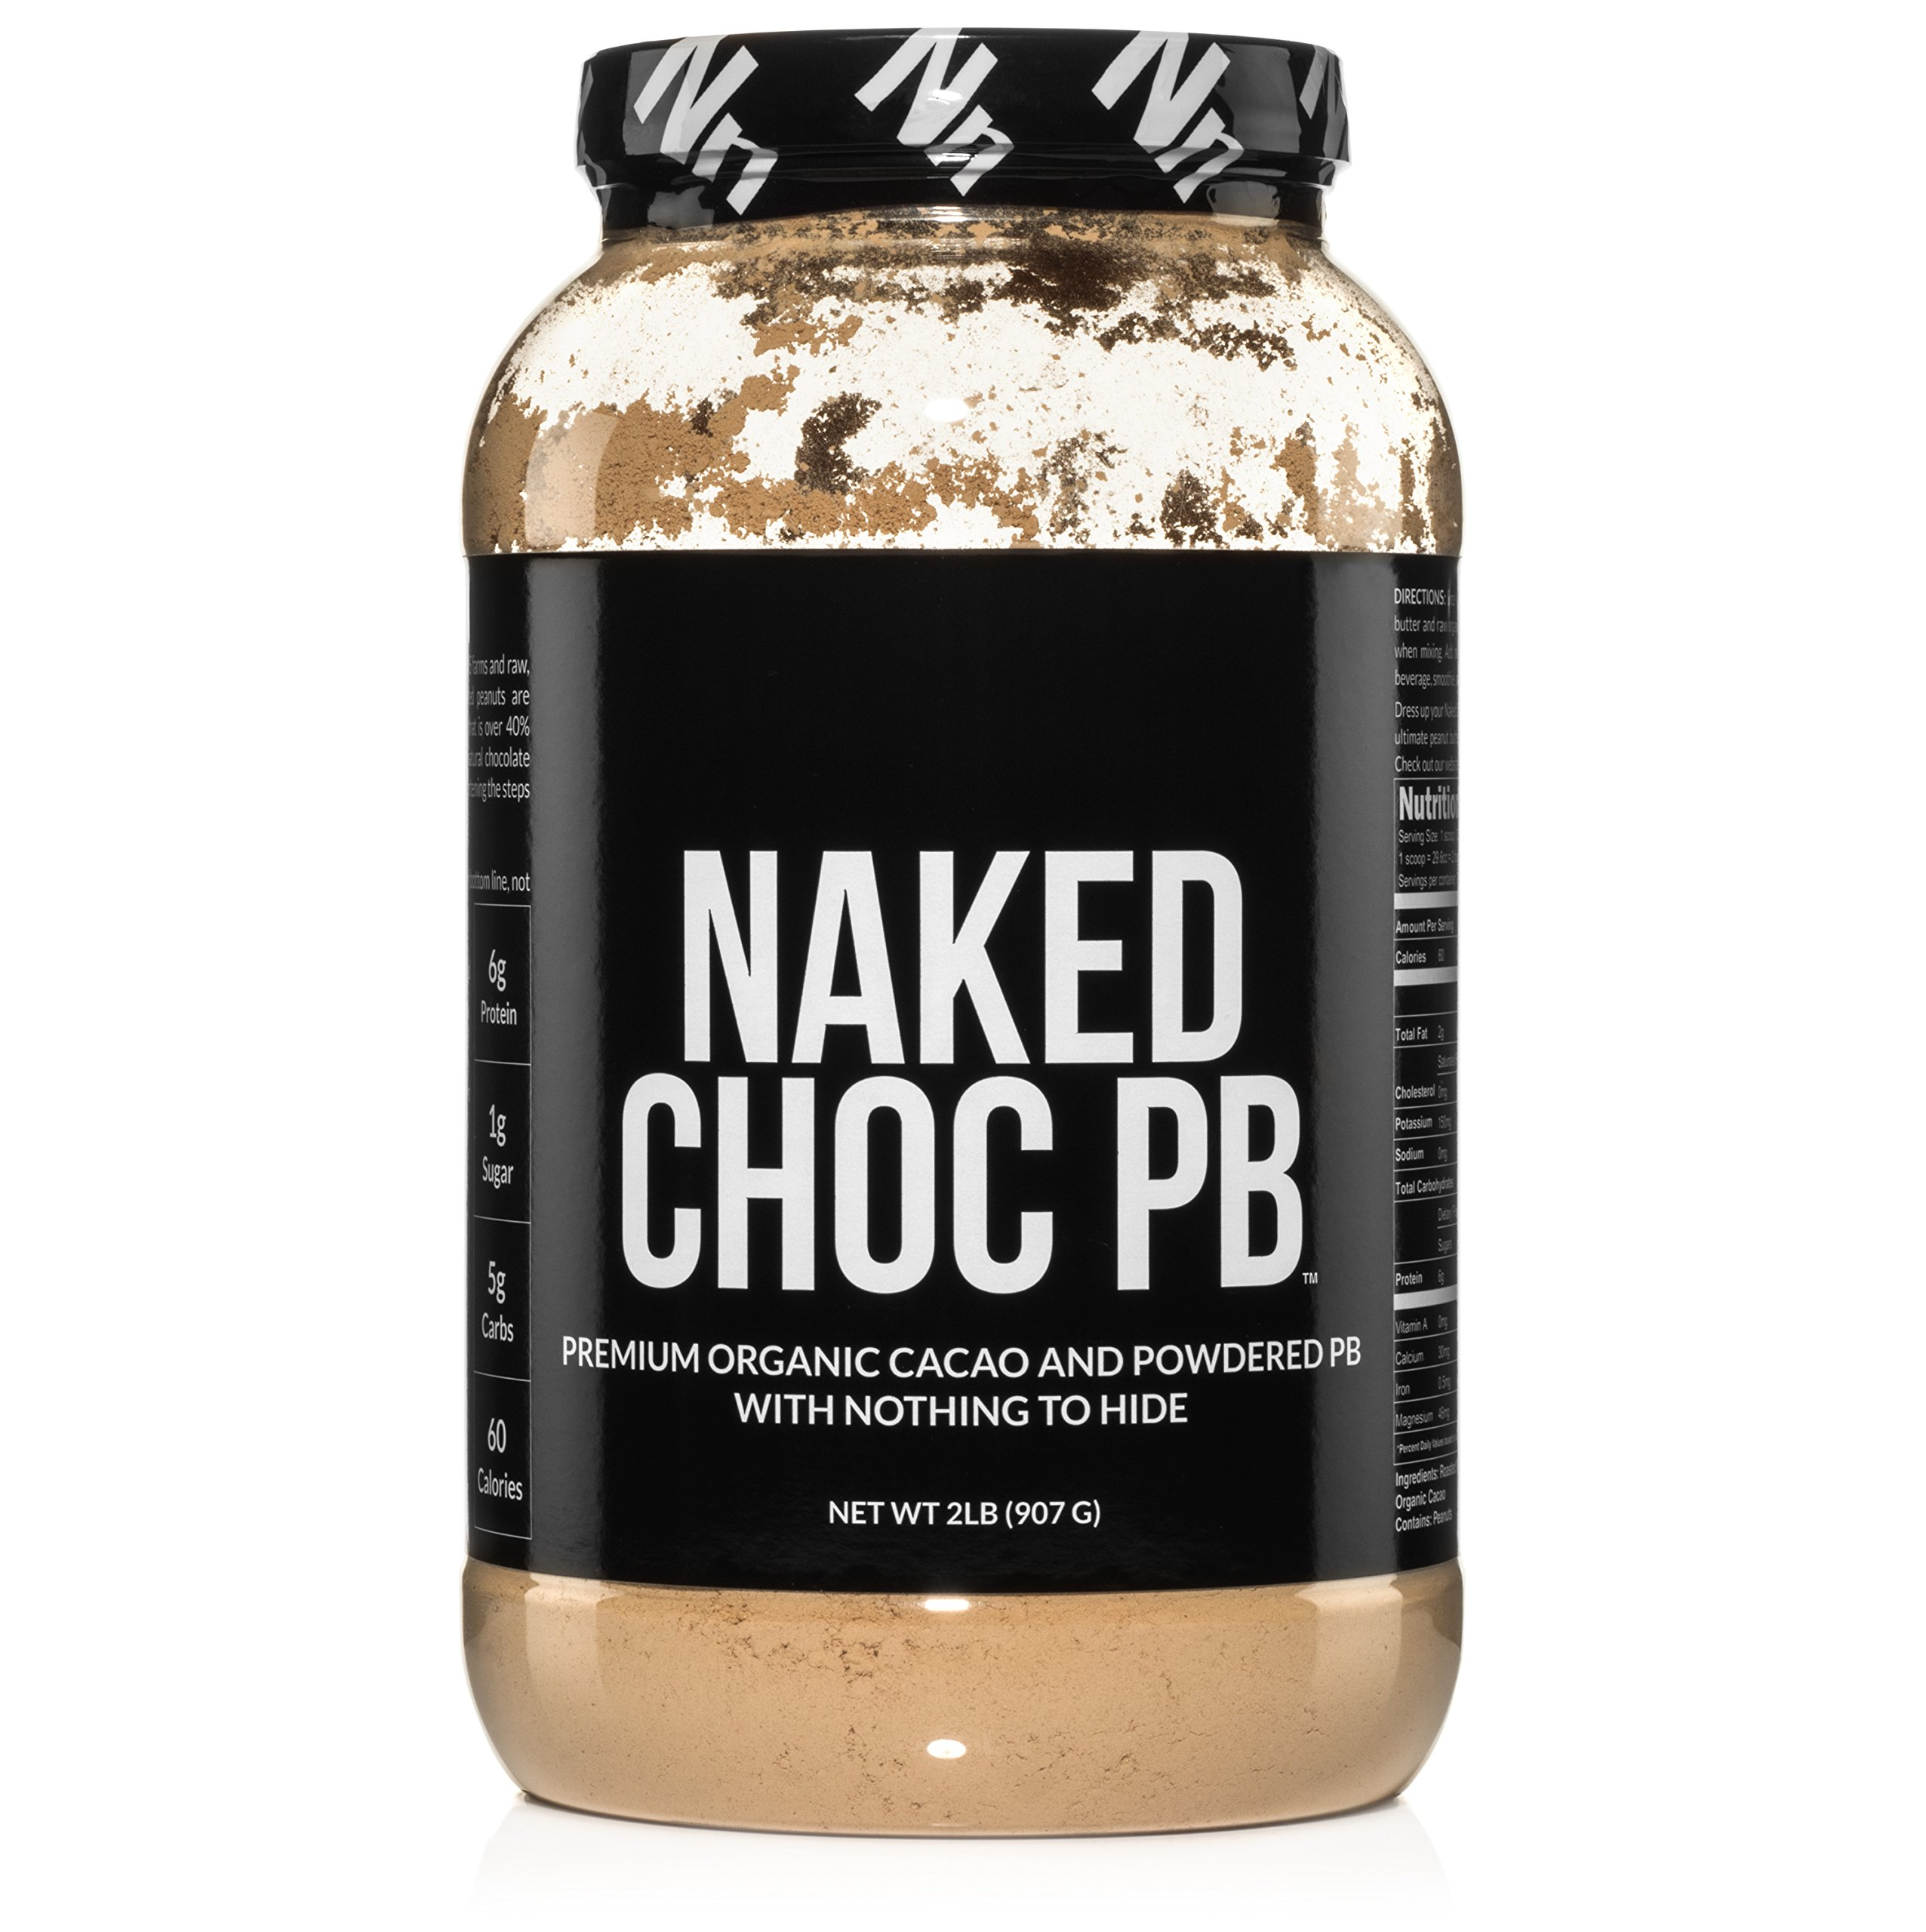 NAKED CHOC PB - Premium Organic Cacao and Powdered PB - 2lb Bulk